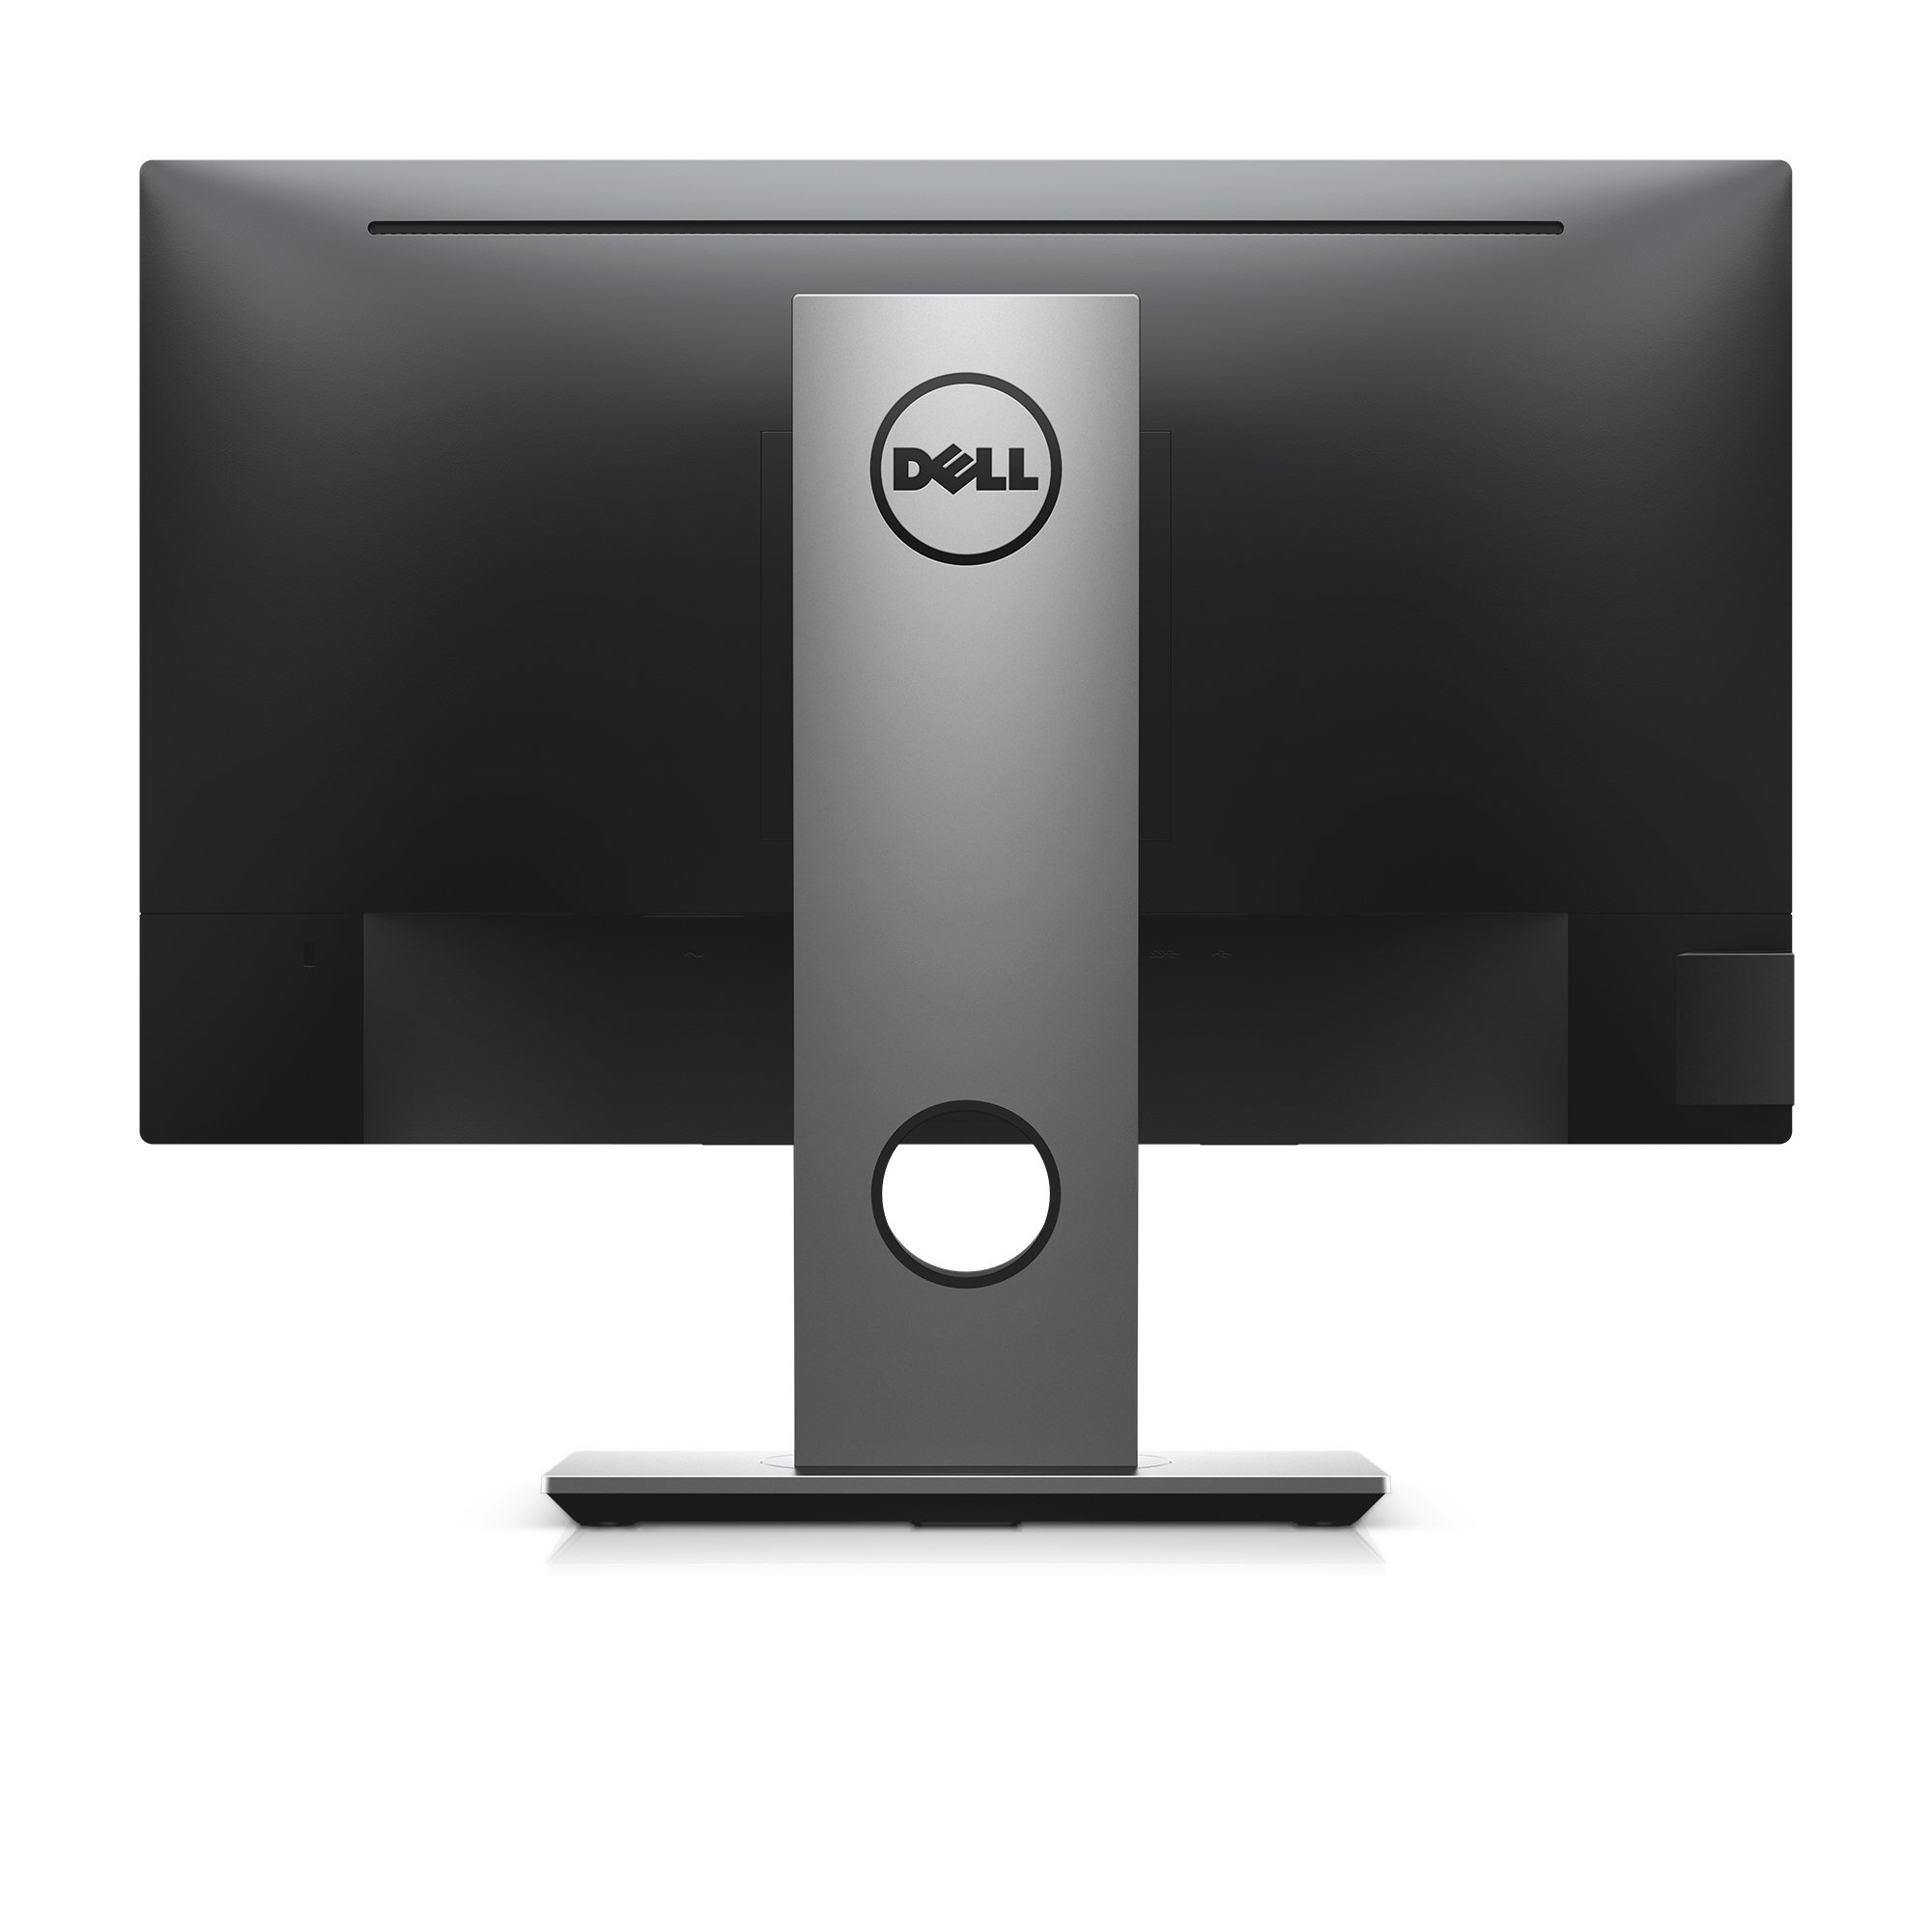 Dell Computer P2217H P2217h 22in Lcd Mon 19x10 6ms